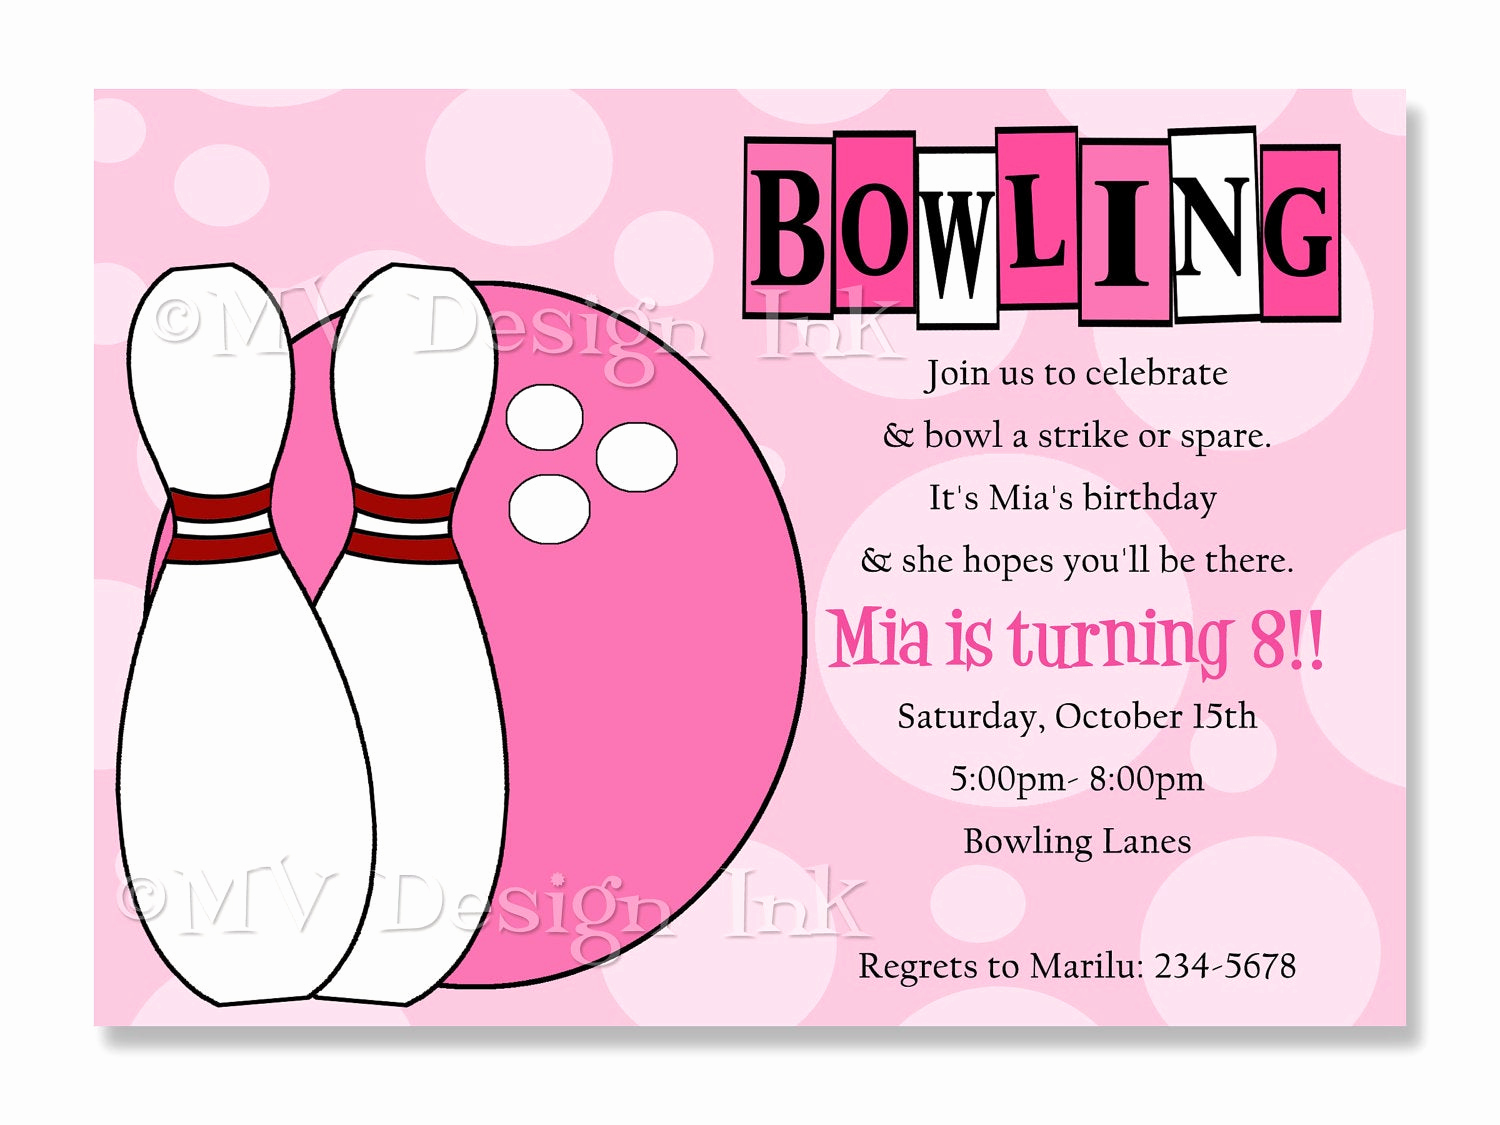 Bowling Birthday Party Invitation Wording Inspirational Girl Bowling Party Invitations Bowling Birthday Invitation